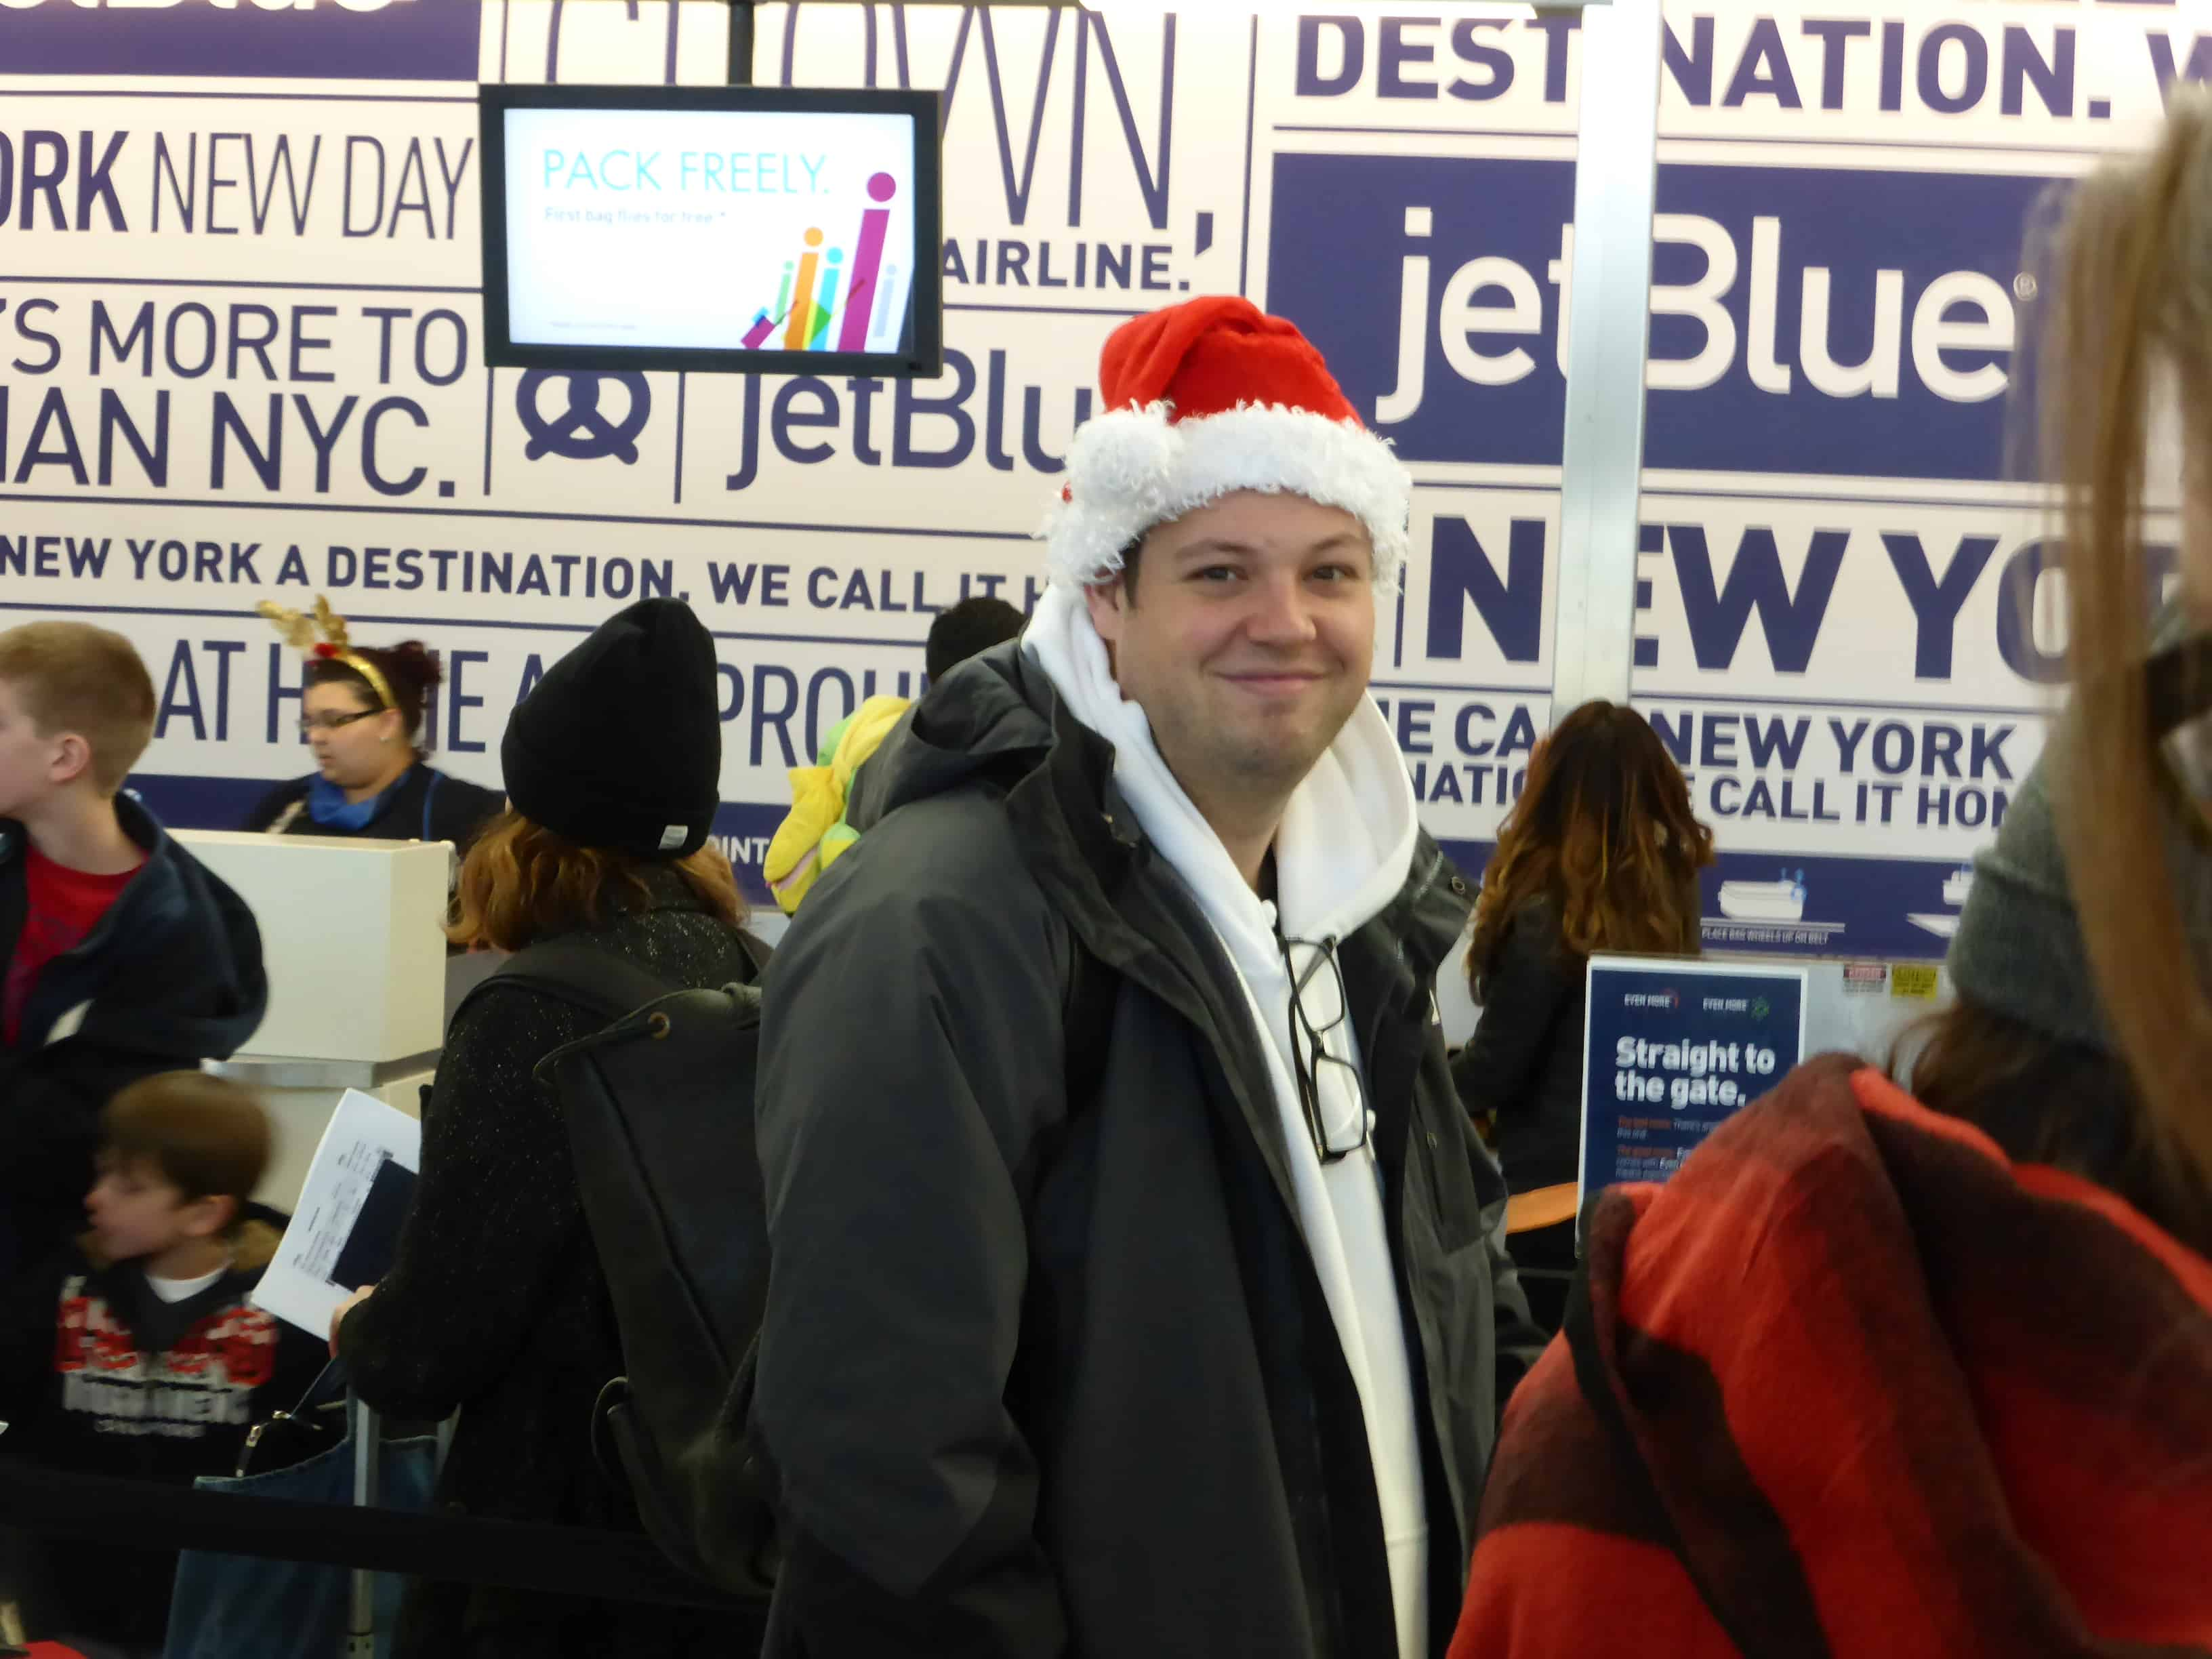 What is it like to fly on Christmas Day? - More Time to Travel